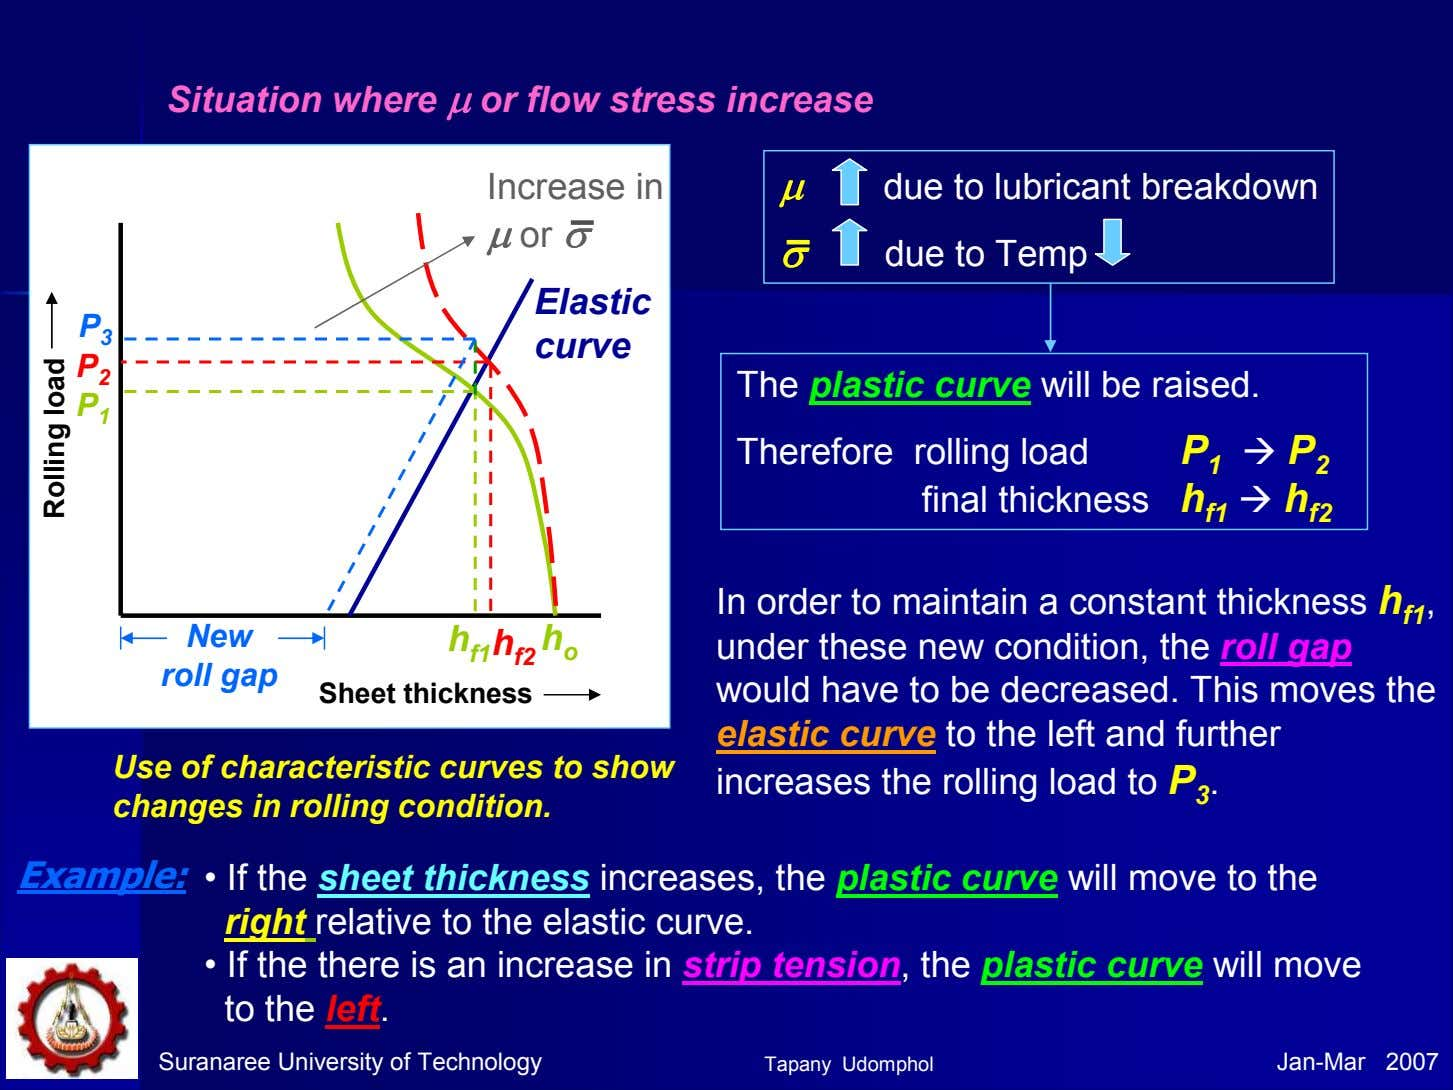 Situation where µµµµ or flow stress increase Increase in µµµµ due to lubricant breakdown µµµµ